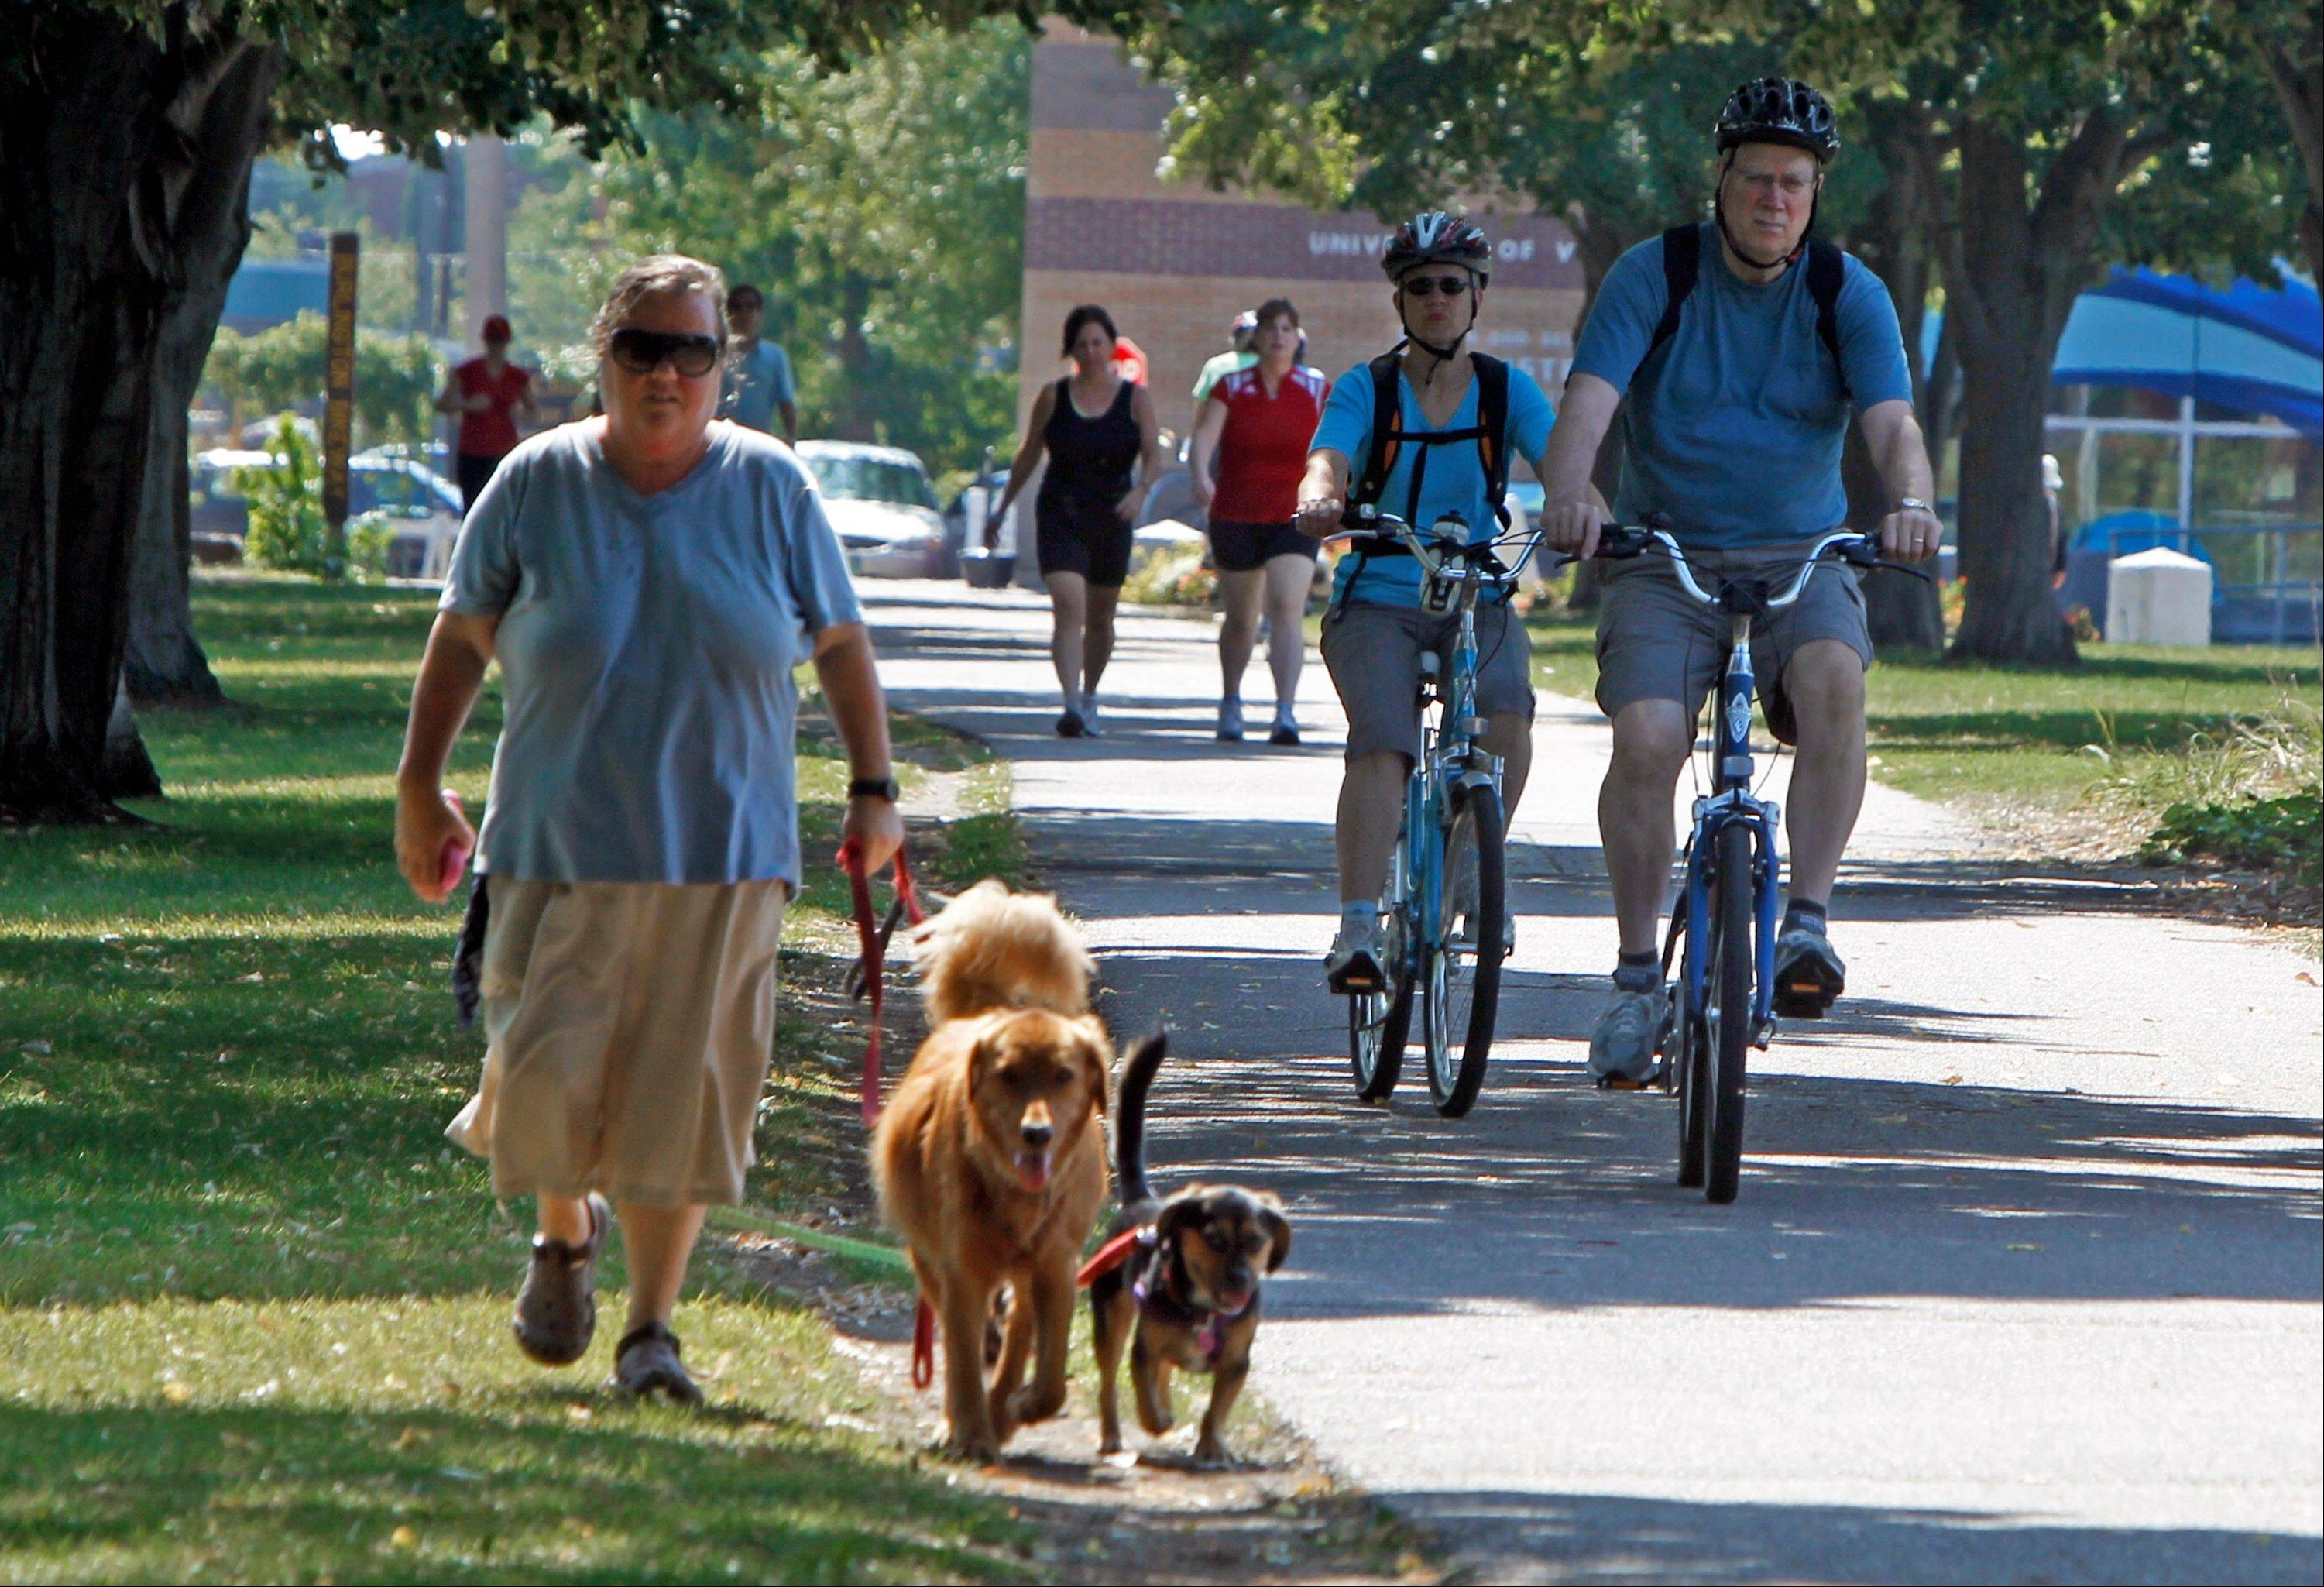 People use the Burlington bike path in Burlington, Vt. Burlington feels more like a big town than a city.